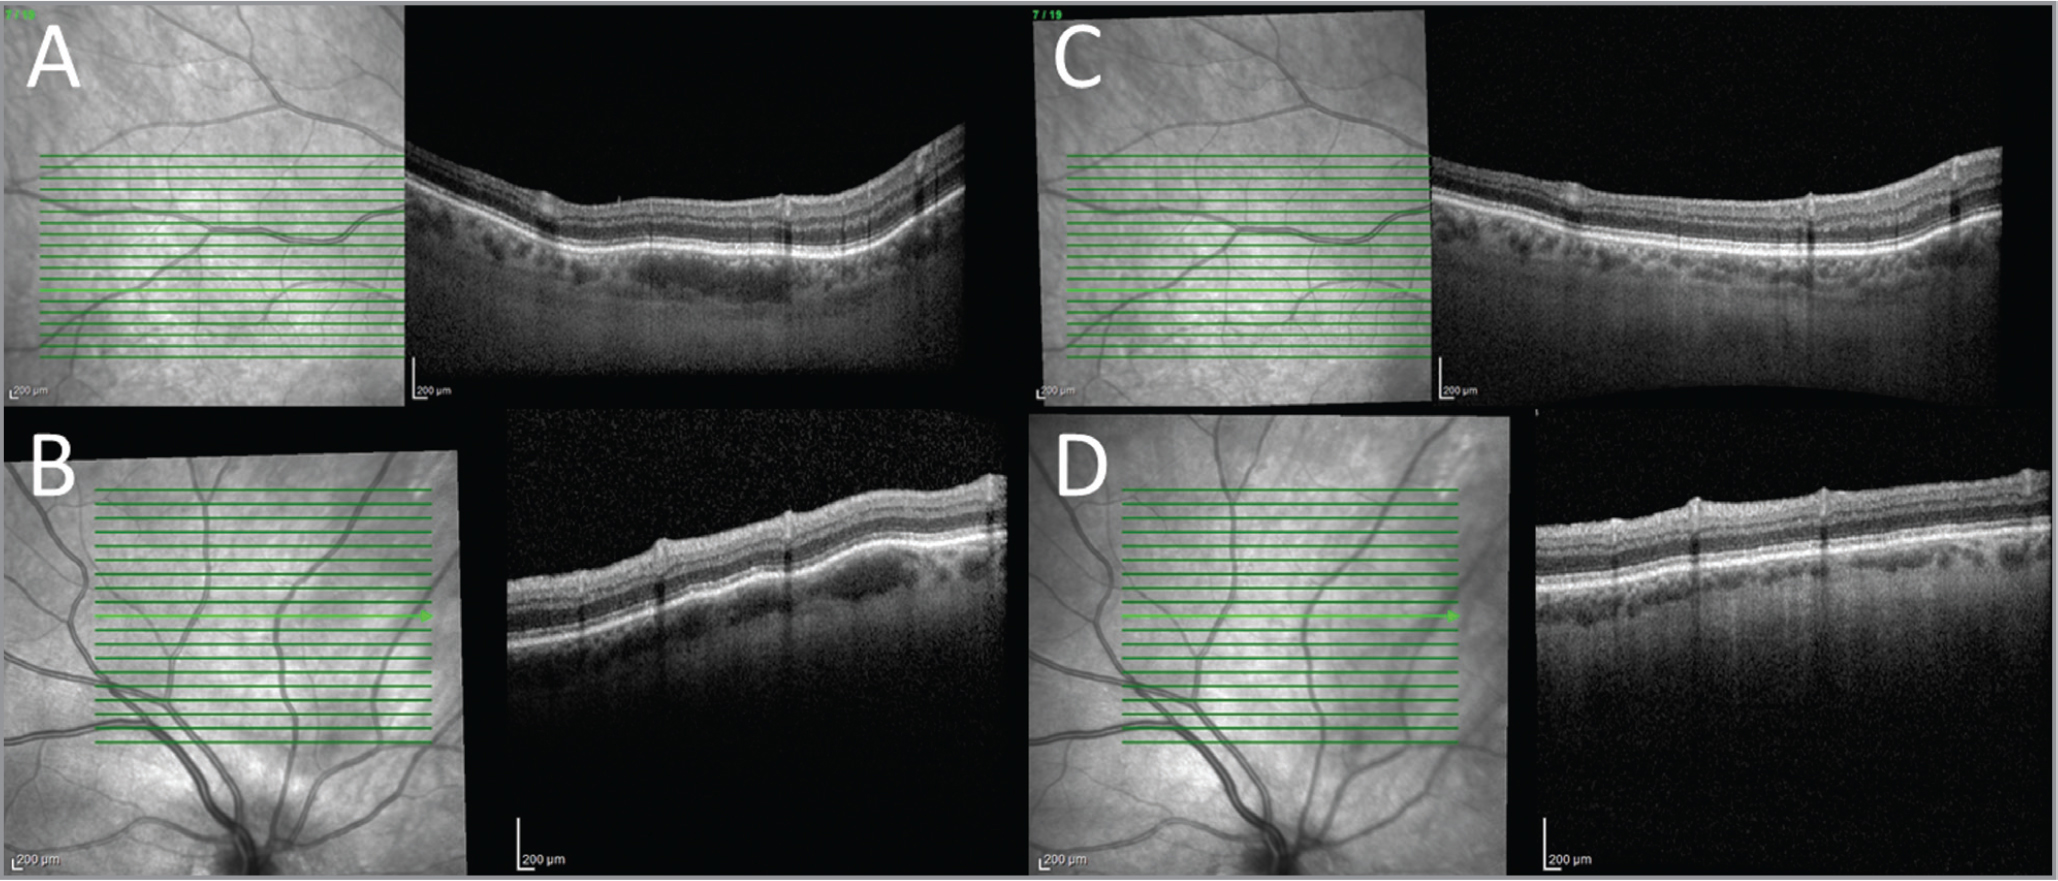 Spectral-domain optical coherence tomography of the hypopigmented lesions in the superotemporal macula (A) and superior to the disc (B) shows deep, hyporeflective choroidal lesions obliterating the normal vascular pattern that resolved 6 weeks after posterior sub-Tenon's triamcinolone acetonide (C, D).